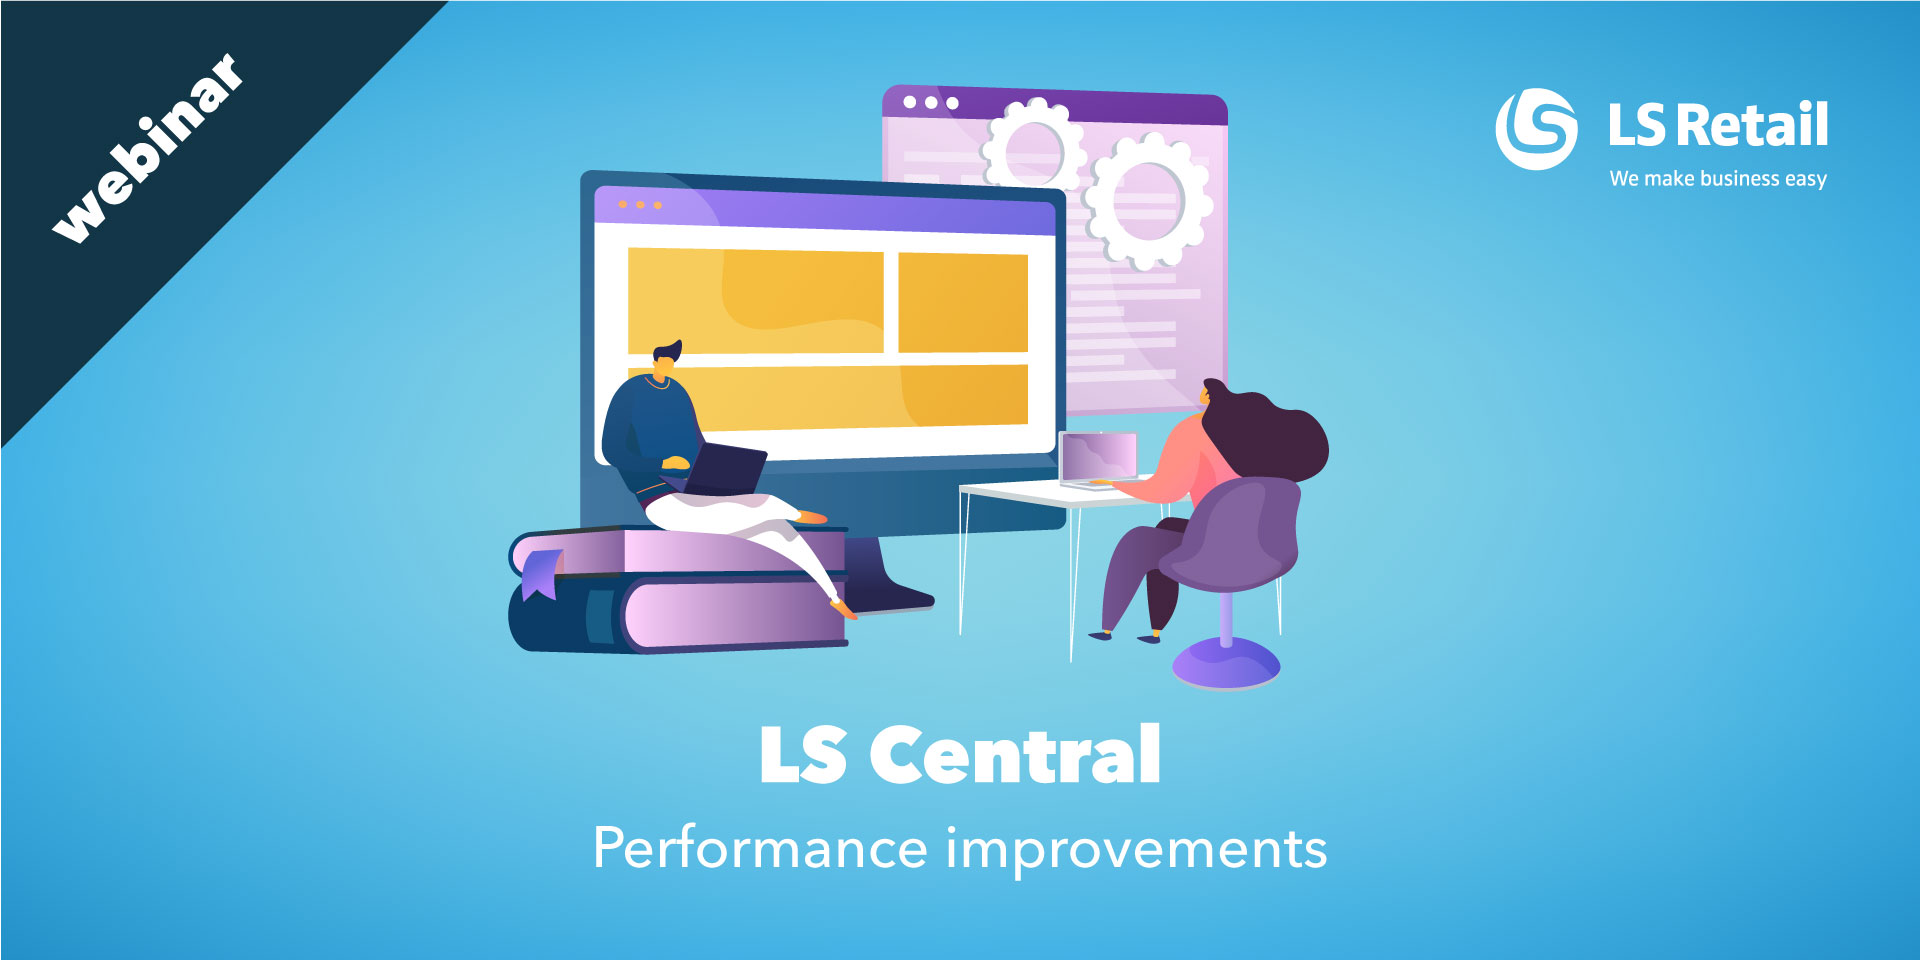 LS Central – Performance improvements